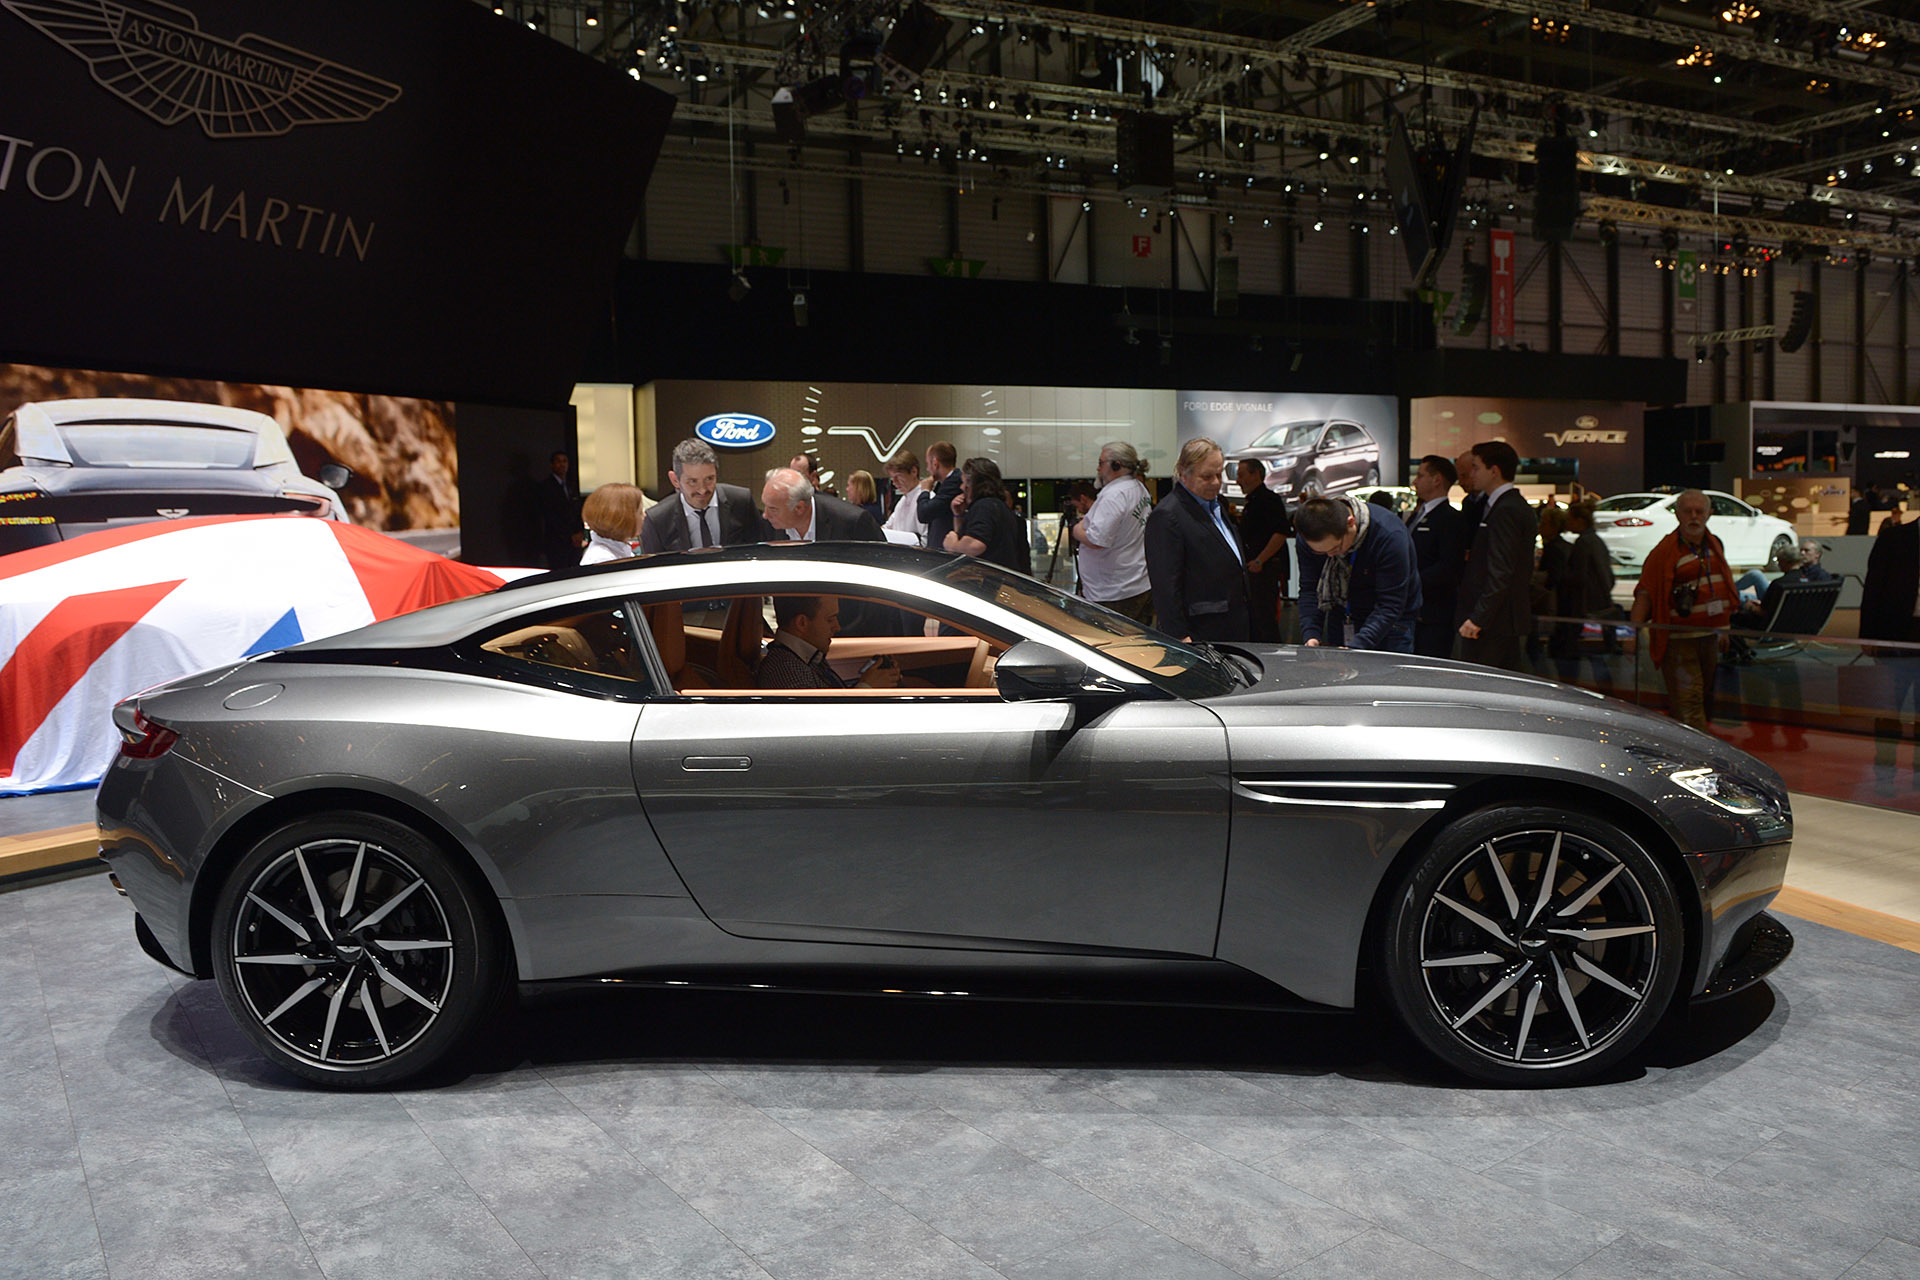 aston martin db10 price with Aston Martin Db11 2016 on The New 2018 Aston Martin Vantage Revealed In Pictures in addition Jay Leno Goes Inside The Aston Martin Vault And Drives The Latest Bond Car as well New Trailer James Bonds Spectre Here And It Rocks besides New aston martin 2011 concept car veloce sweden further Bulletproof Driving James Bonds Aston Martin Db5 Dbs And Db10.